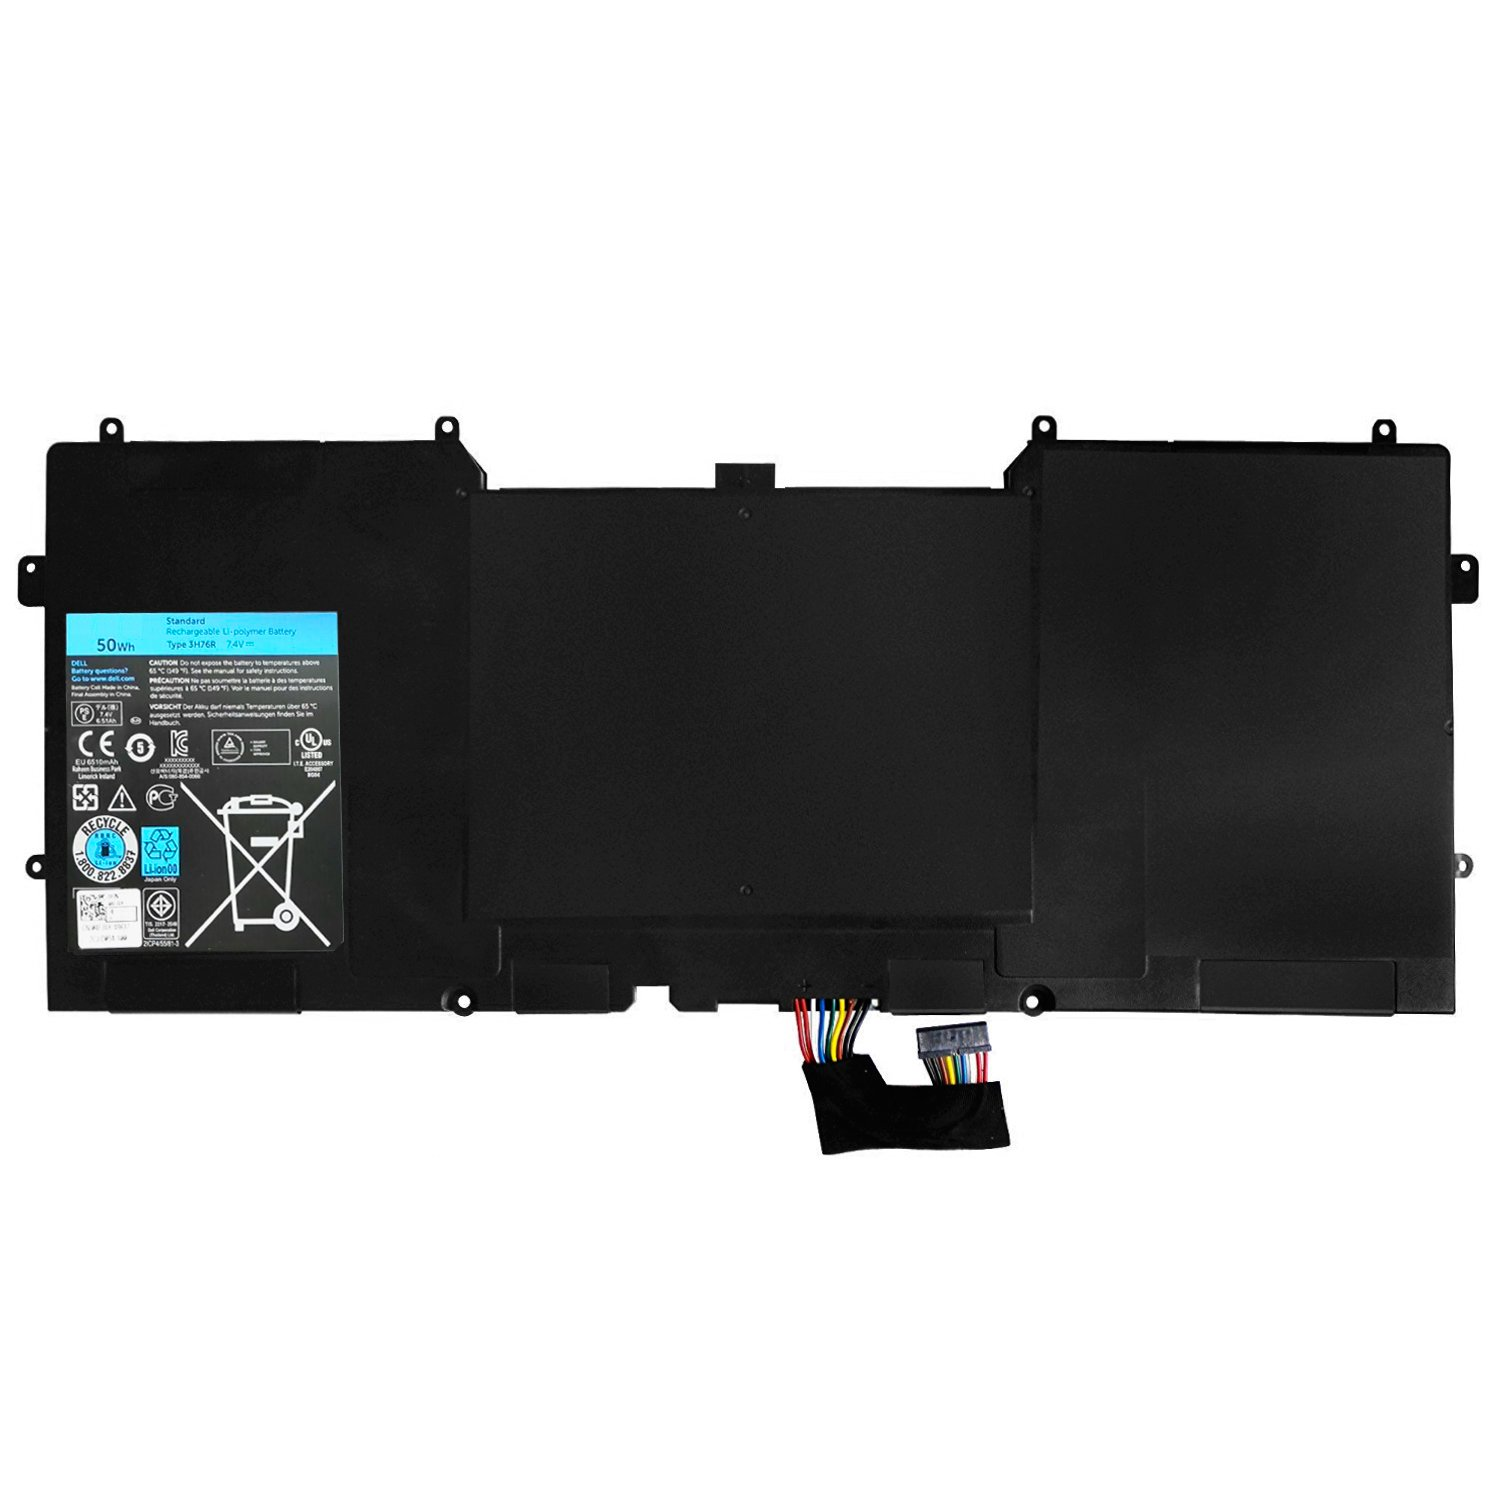 Zthy Compatible 3h76r New Laptop Battery Replacement For 6400 Converter Wiring Diagram Dell Xps 12 9q32 9q33 9q34 L221x L321x L322x 13 9333 4fjxy Series